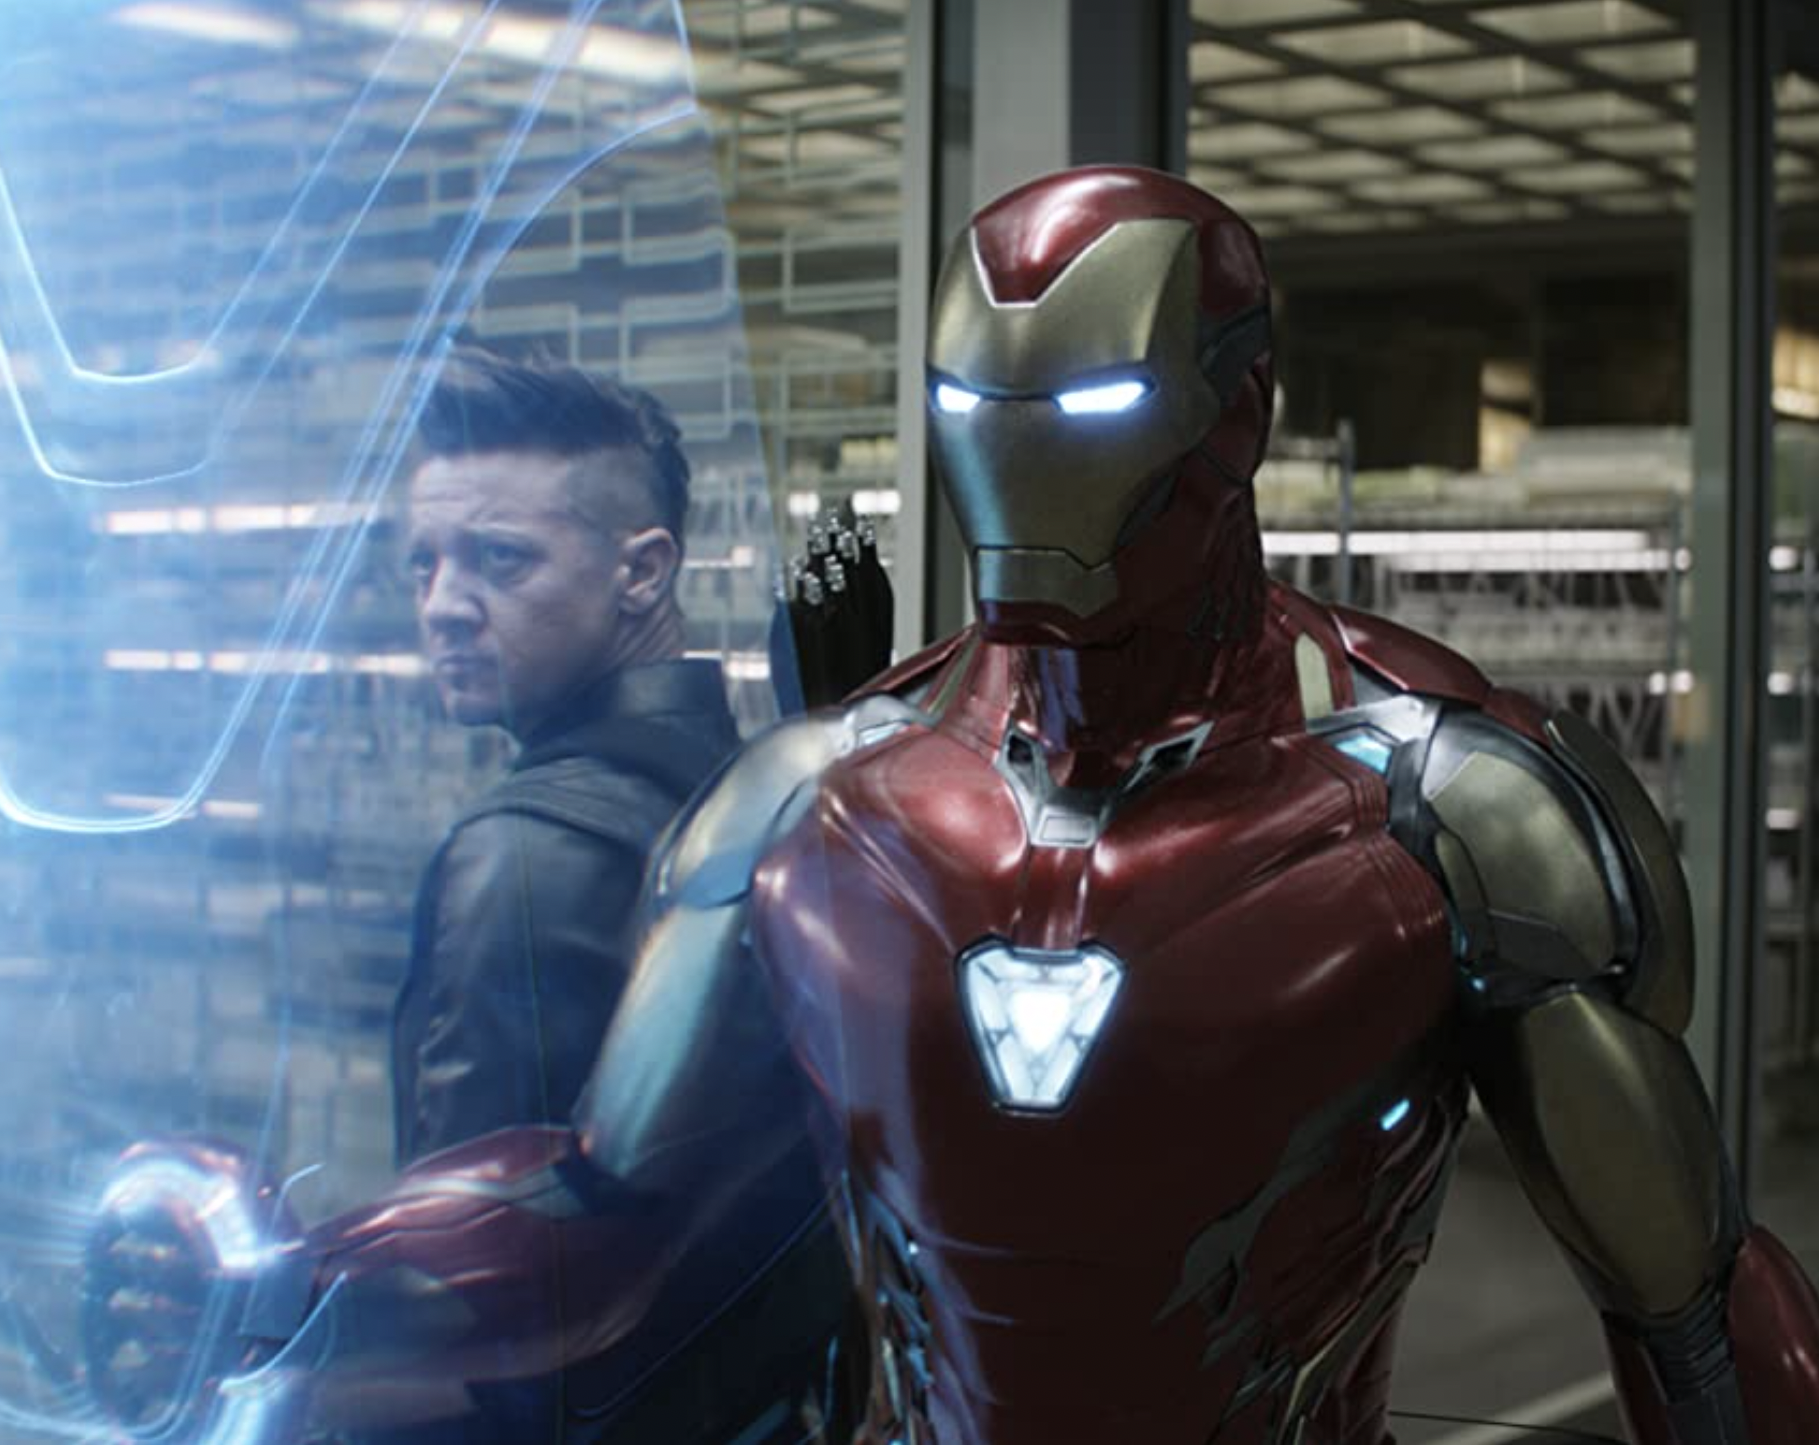 Screenshot 2021 05 28 at 14.05.15 e1622207152705 25 Reasons Why The Avengers Are Actually The Bad Guys Of The MCU